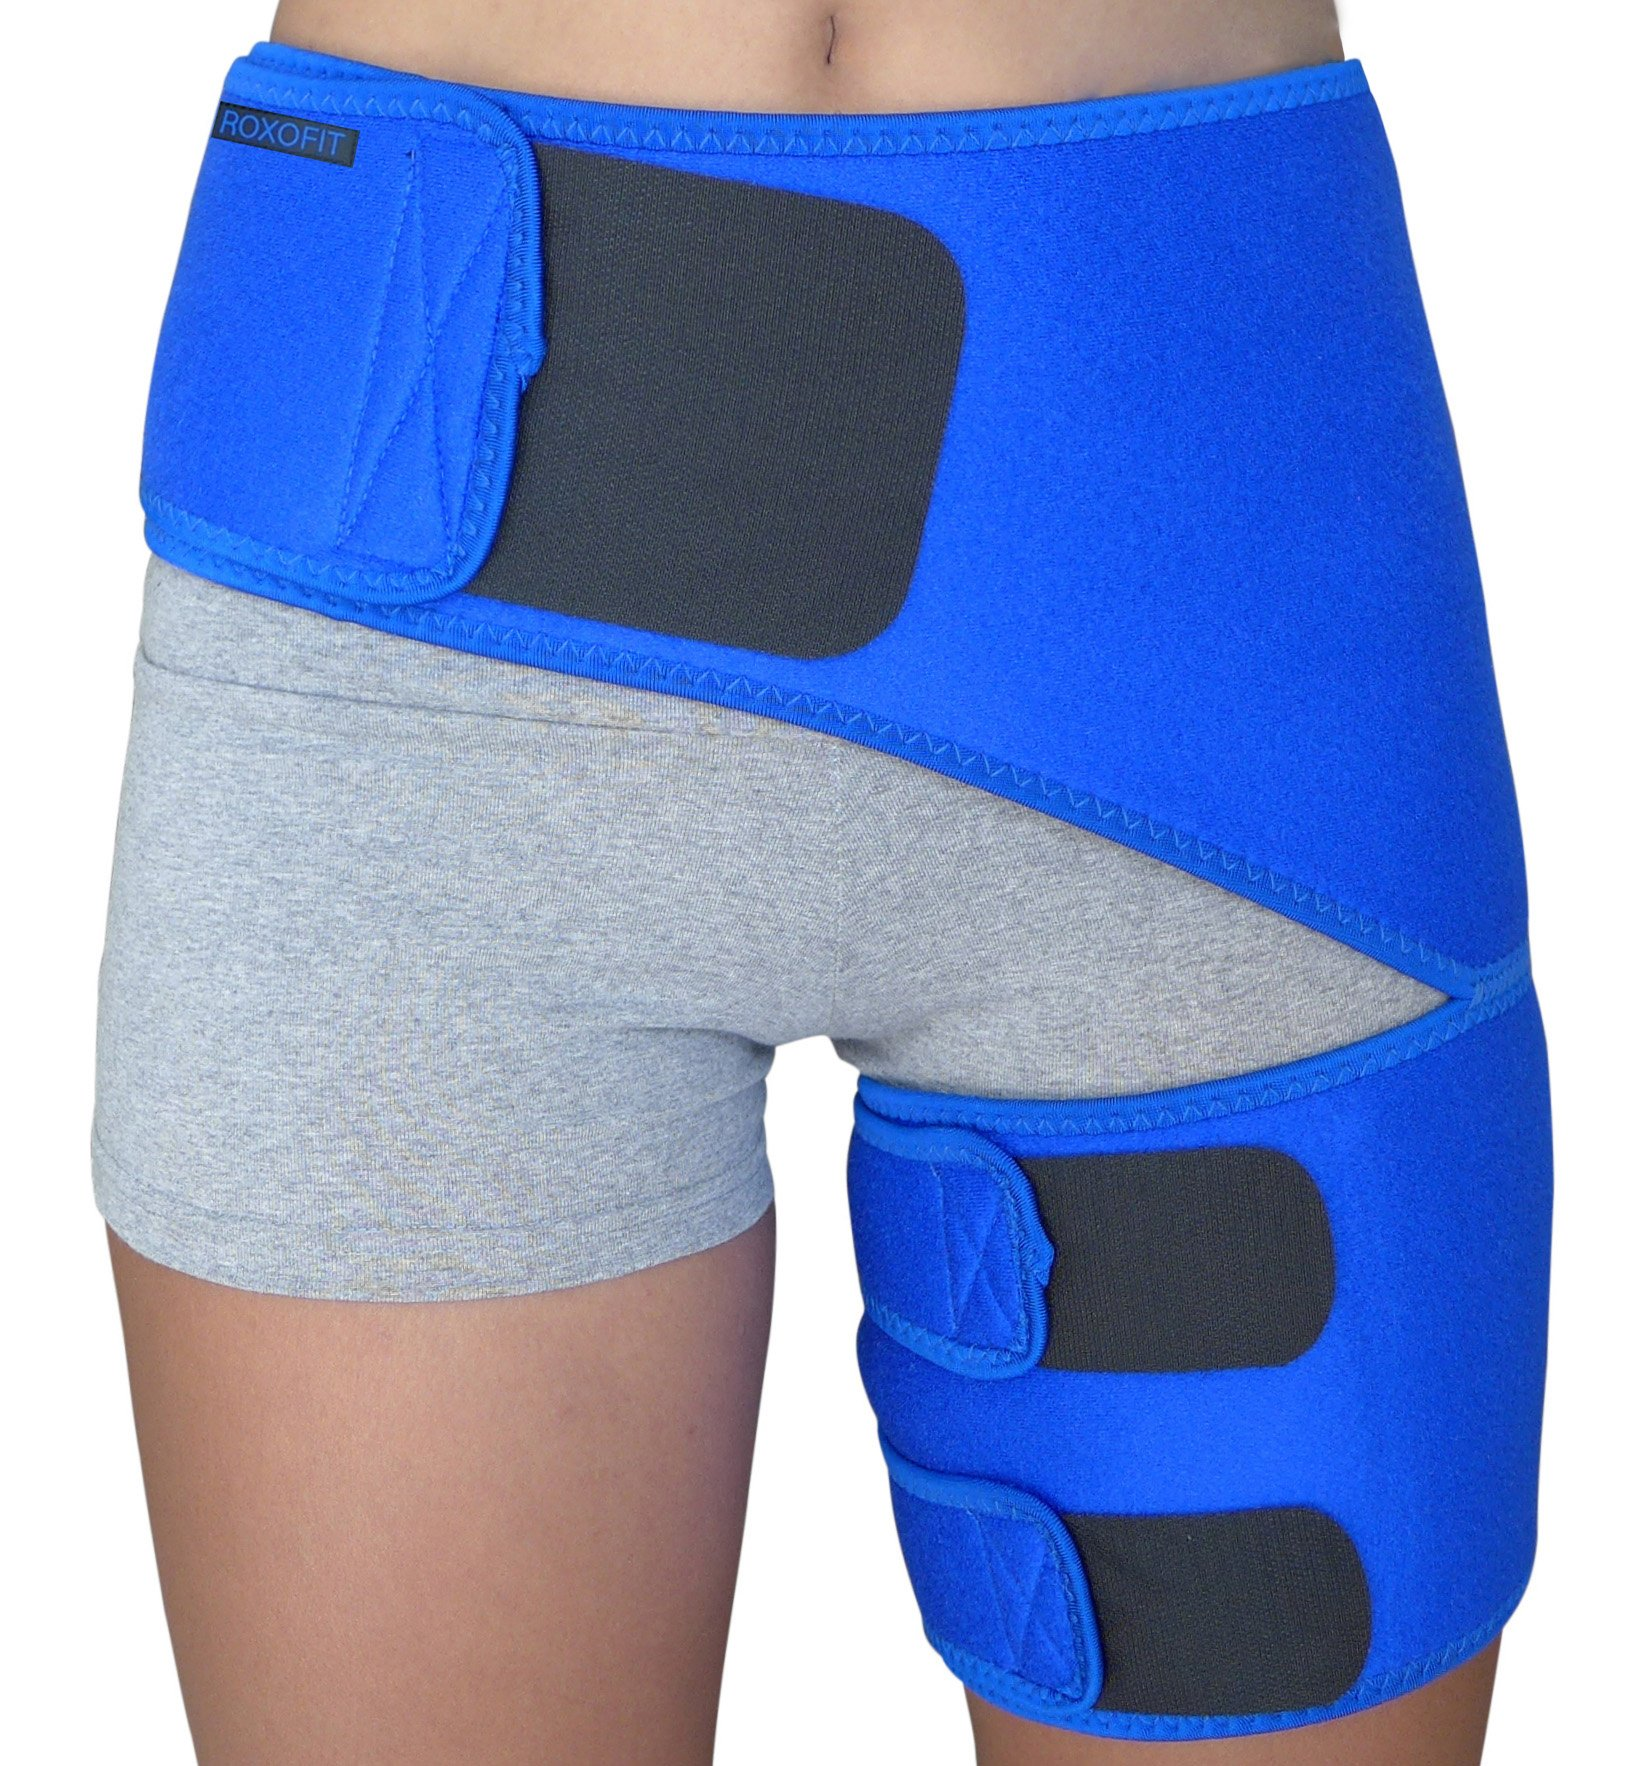 Hip Brace for Men and Women - Groin Support for Sciatica Pain Relief Thigh Hamstring Quadriceps Hip Arthritis SI Joint Injuries Hip Flexor Pulled Muscles - Best Compression Groin Sciatic Wrap Belt